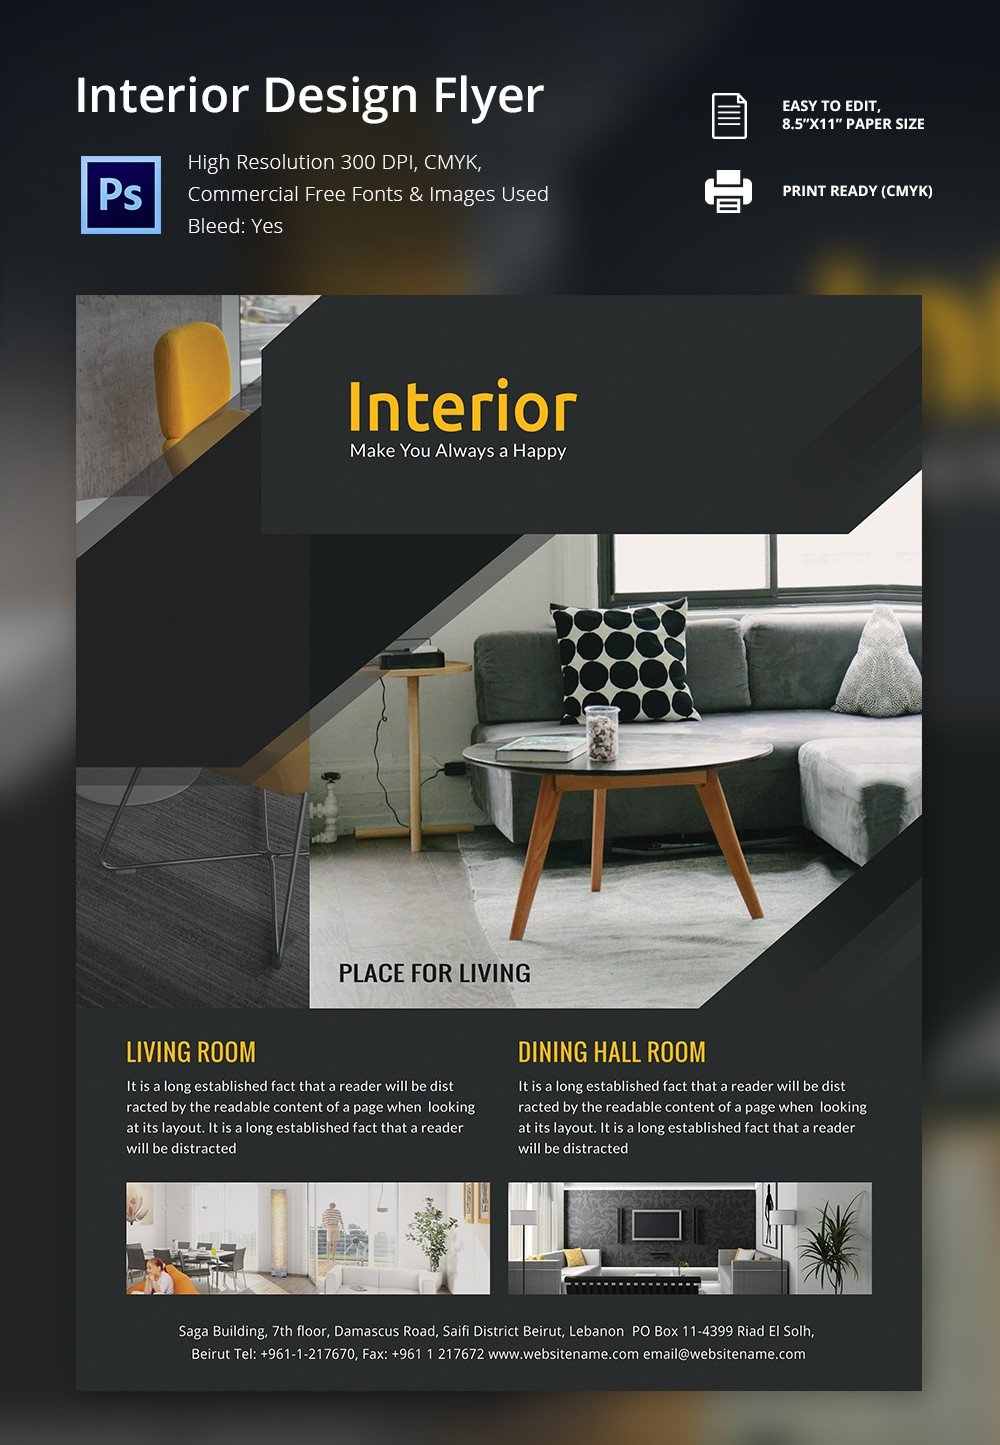 Free Flyers Designs Templates Interior Design Brochure 25 Free Psd Eps Indesign